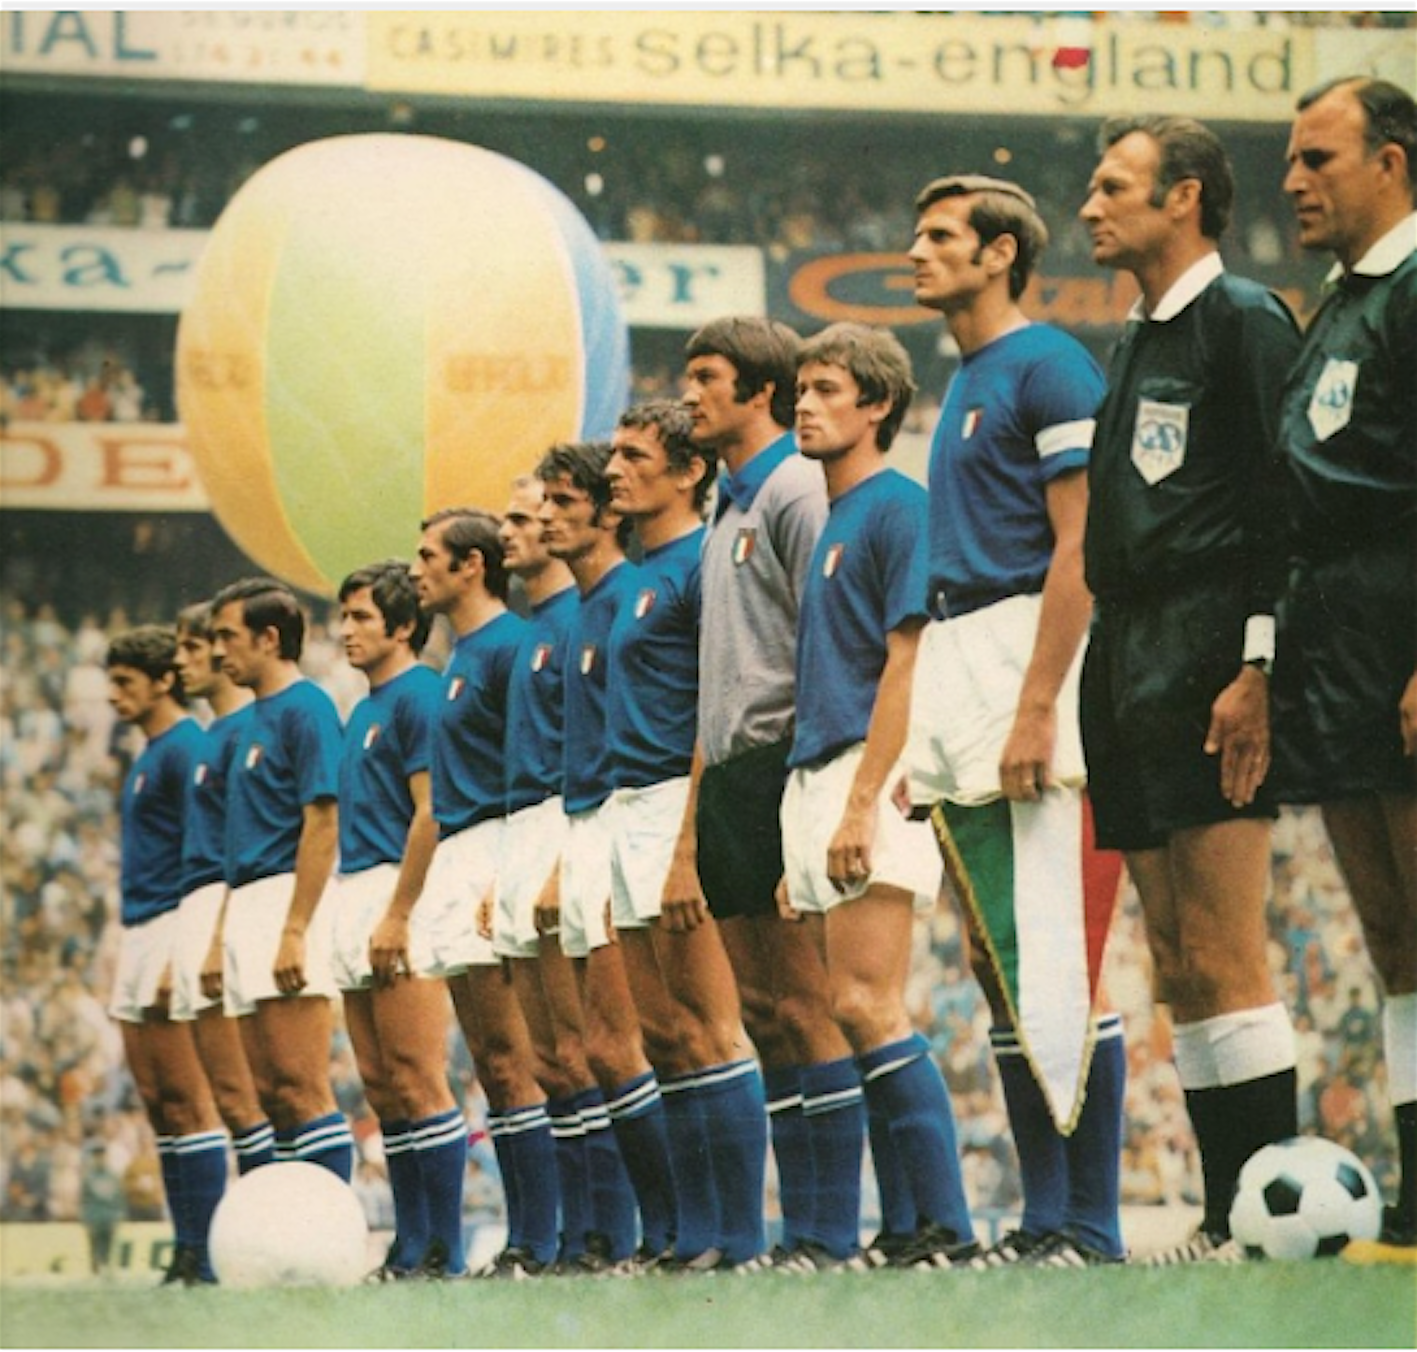 germania_italia_1970_4_3_partita_mondiali_messico